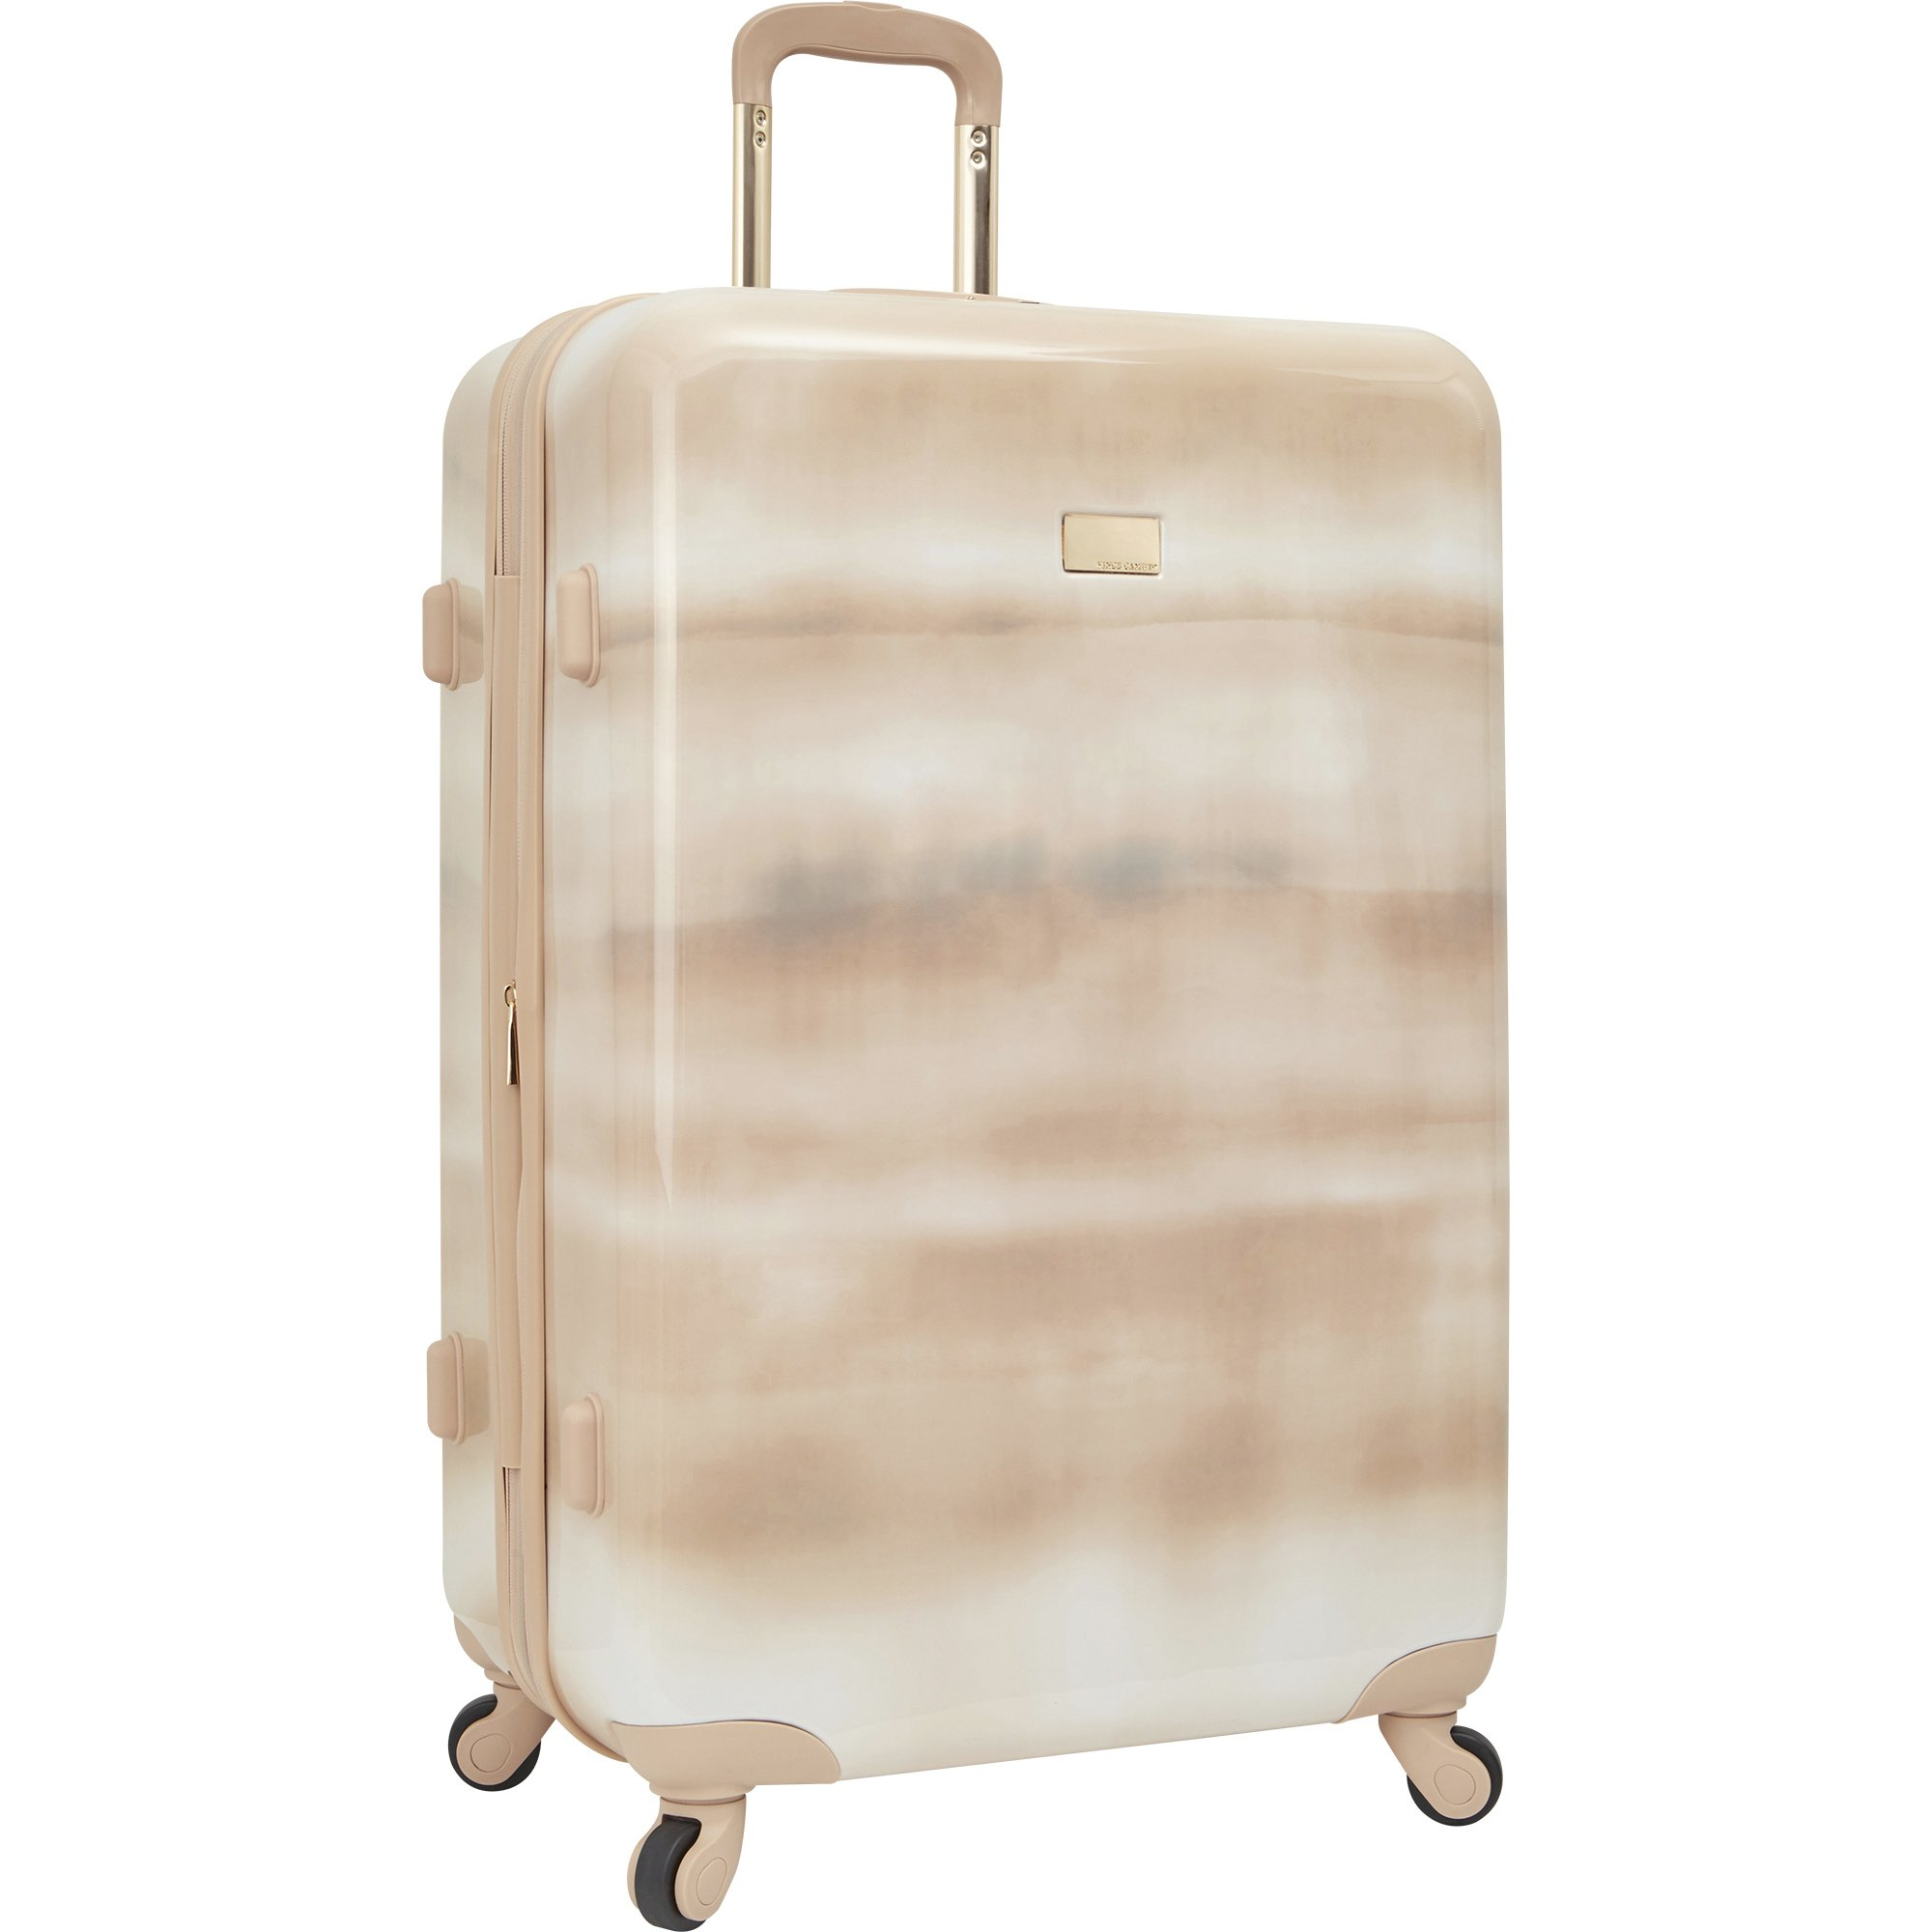 Vince Camuto Women's Perii 29˝ Hardside Suitcase, Rose Gradient